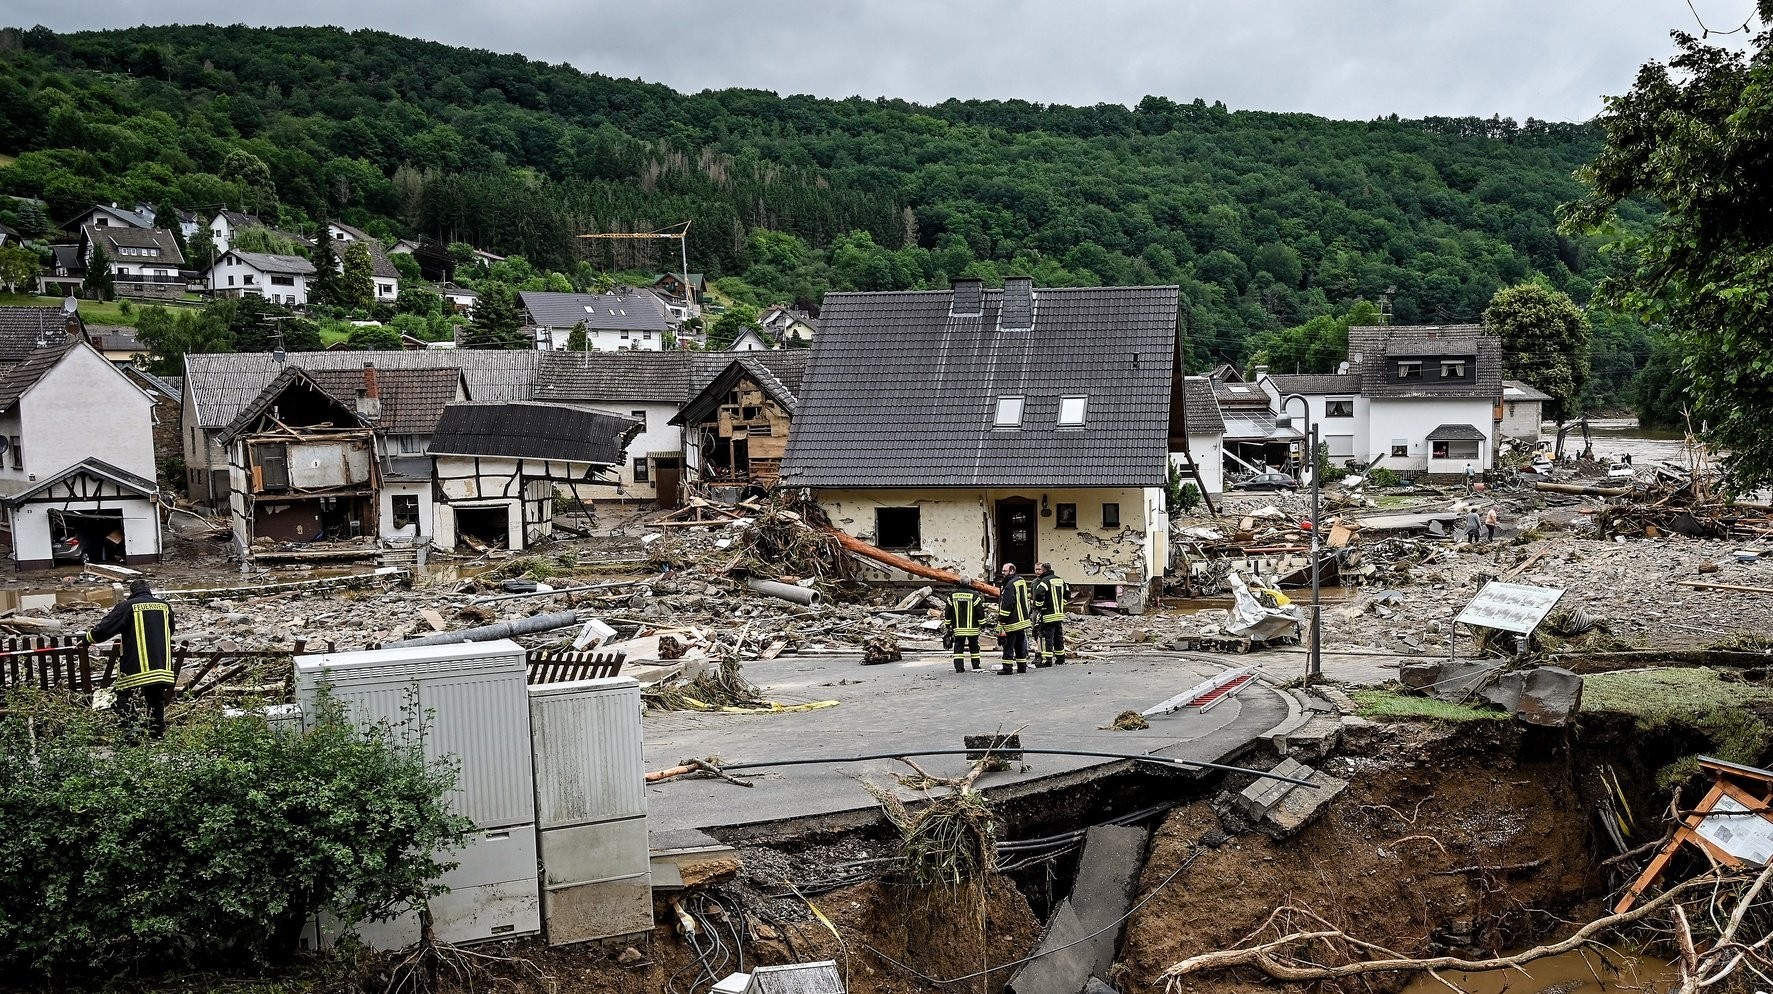 epa09346717 A view of the damage at village of Schuld in the district of Ahrweiler after heavy flooding of the river Ahr, in Schuld, Germany, 15 July 2021. Large parts of Western Germany were hit by heavy, continuous rain in the night to 14 July, resulting in local flash floods that destroyed buildings and swept away cars.  EPA/SASCHA STEINBACH